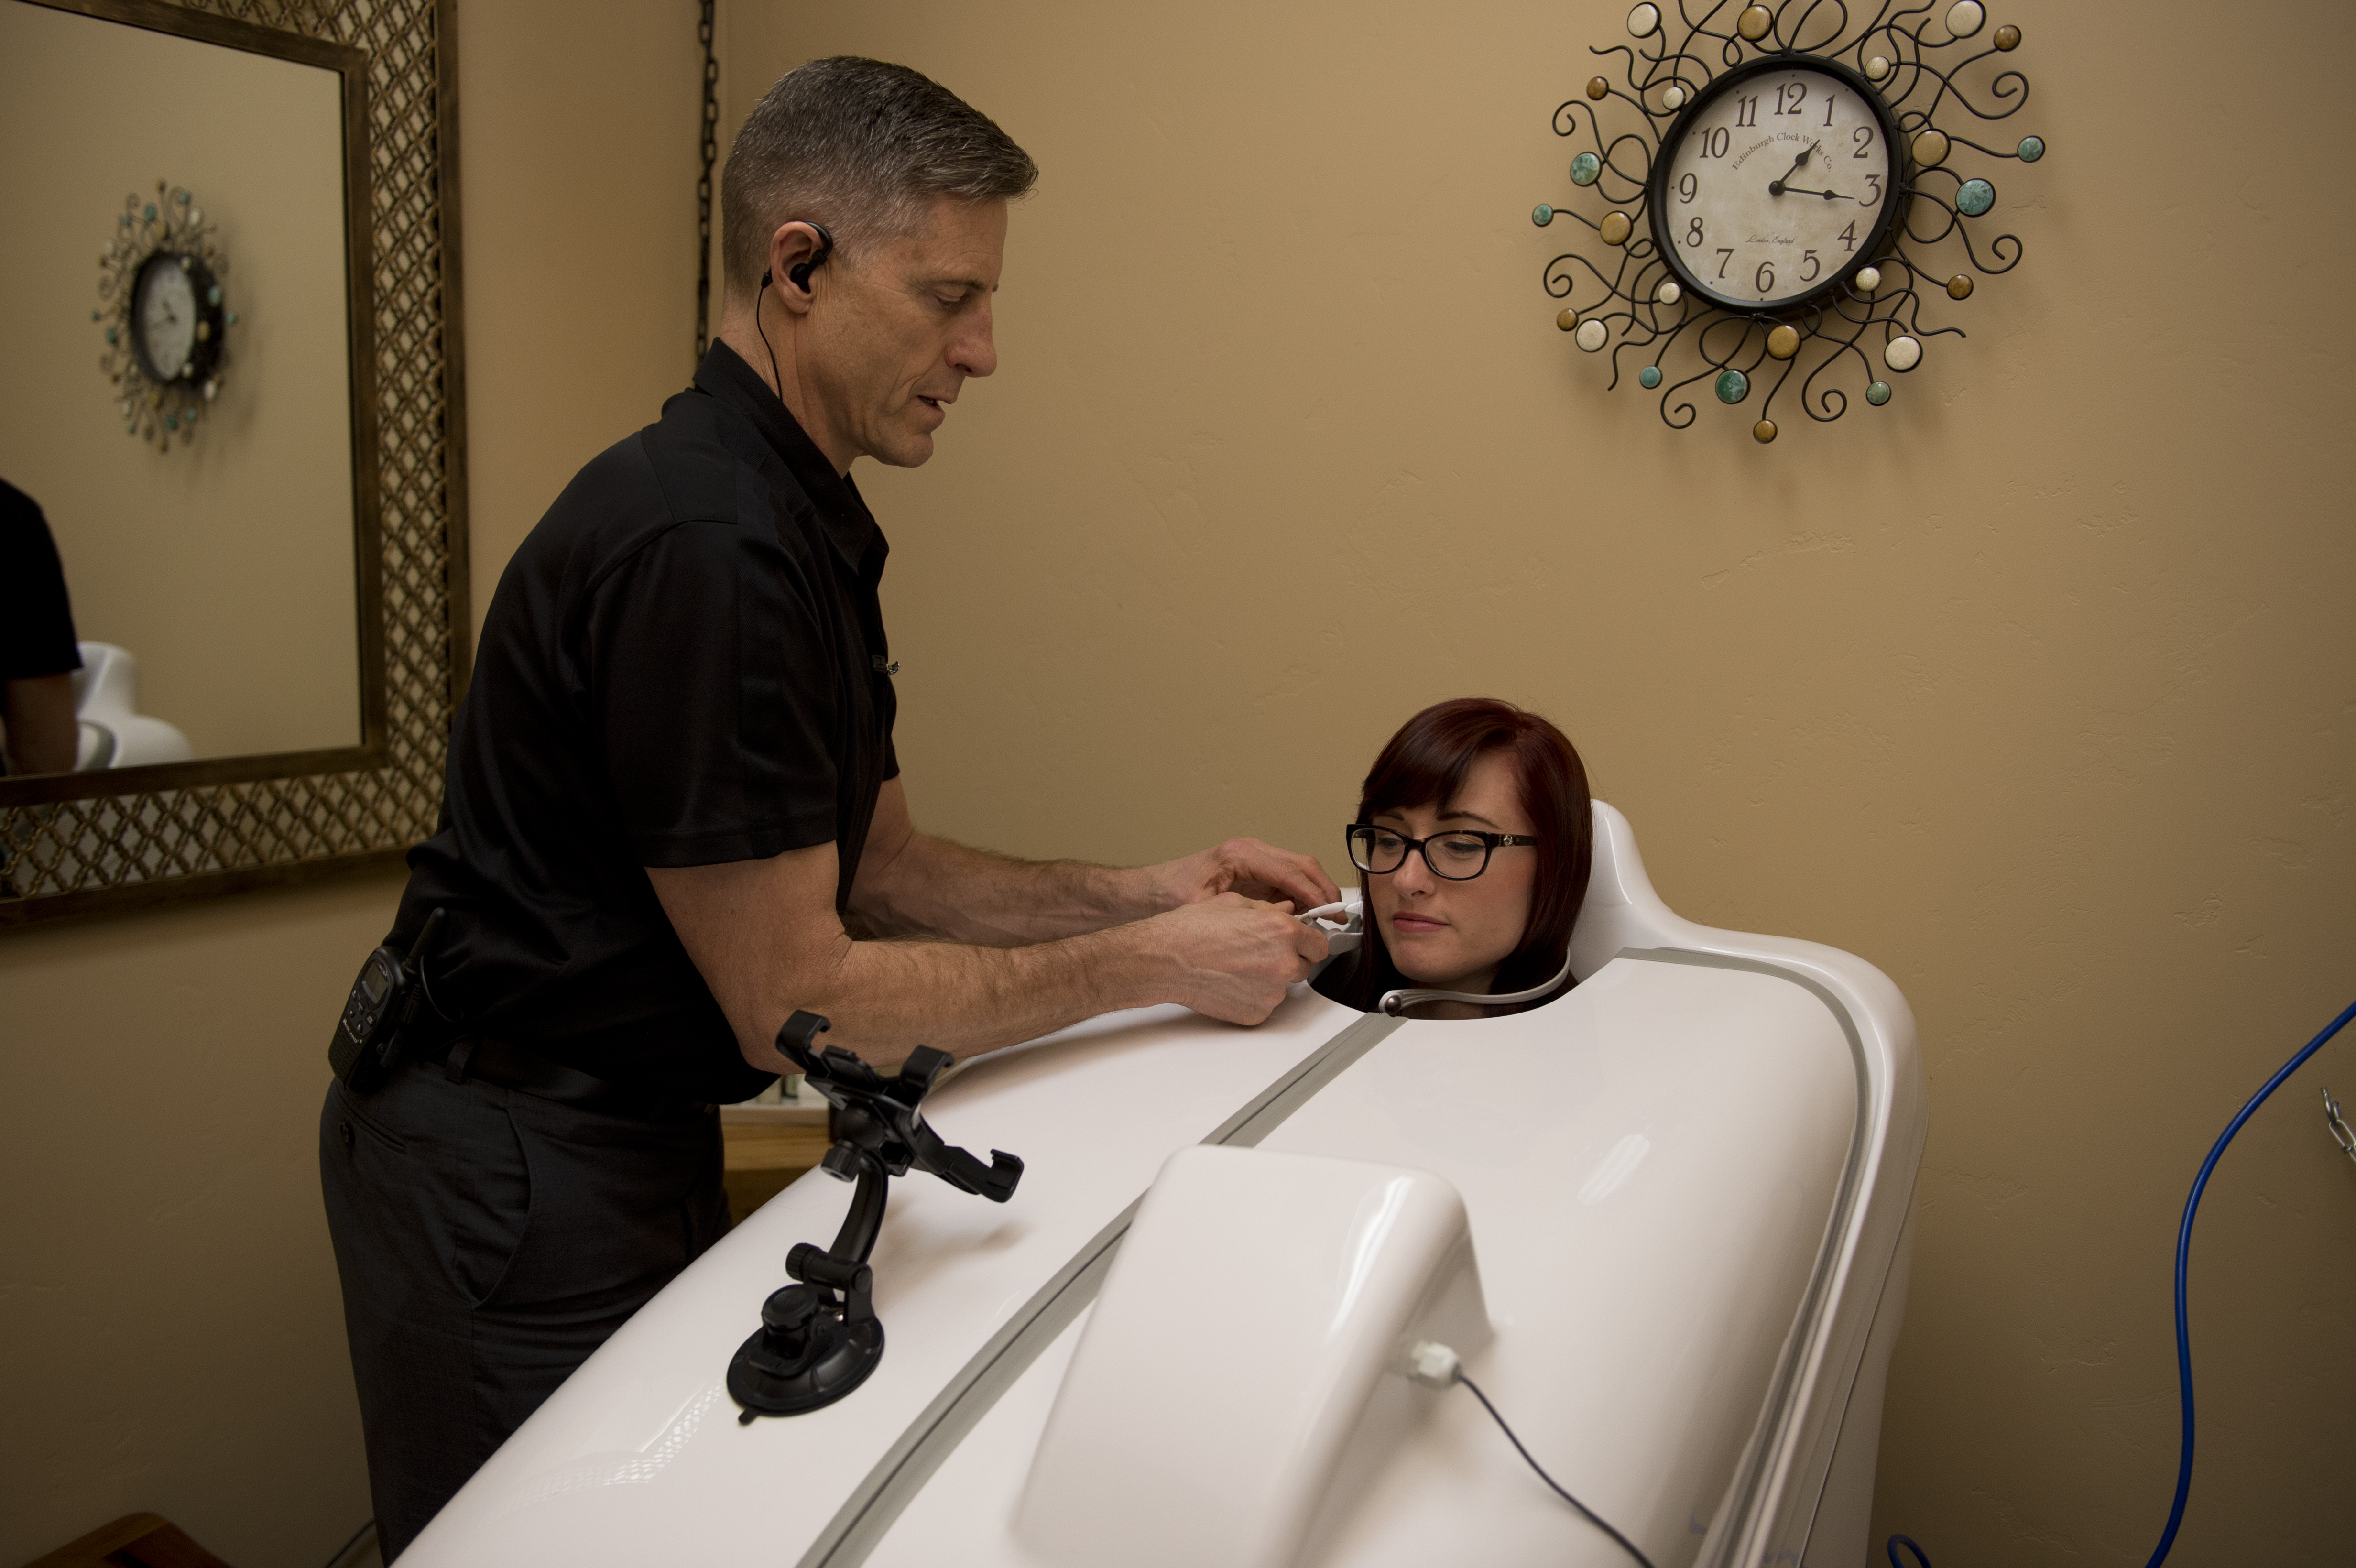 Patient undergoing HOCATT Ozone Sauna Therapy at The Karlfeldt Center in Idaho..